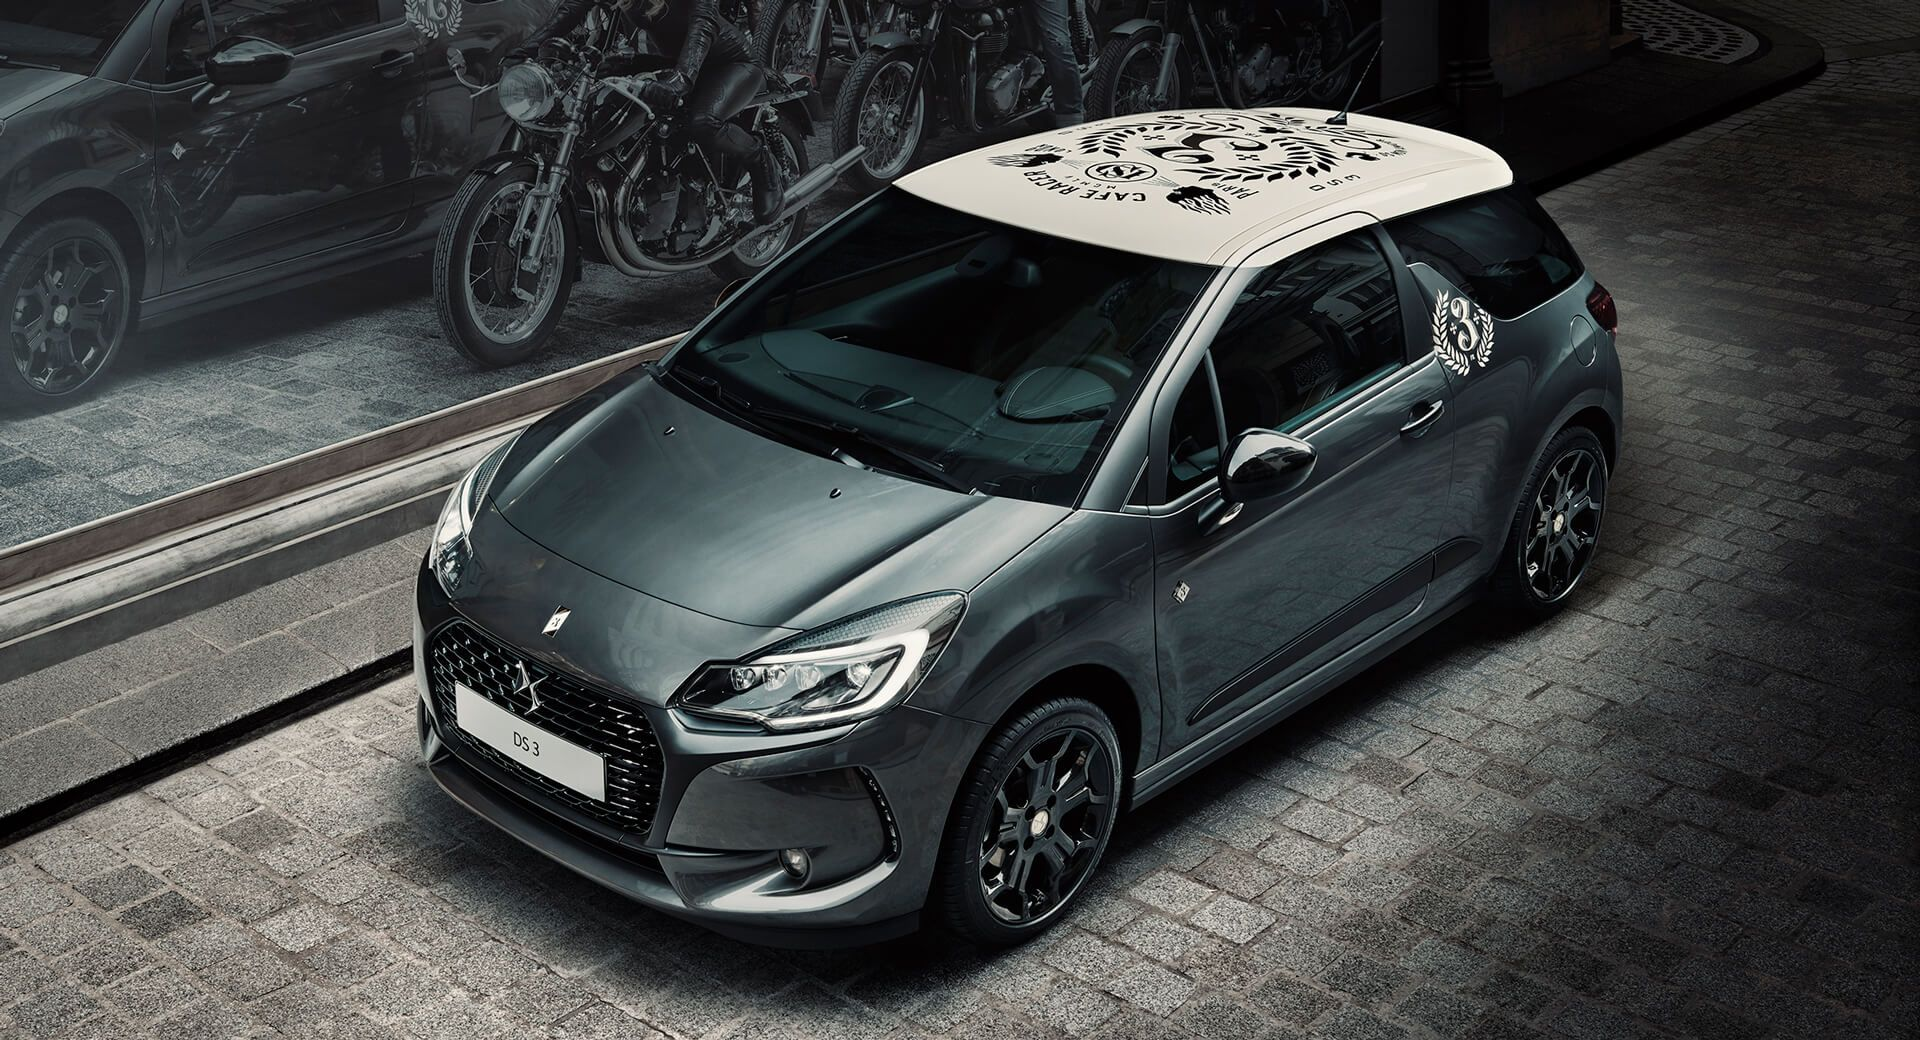 Ds 3 Café Racer : ds3 caf racer limited edition launched in uk from 21 305 carscoops ~ Medecine-chirurgie-esthetiques.com Avis de Voitures